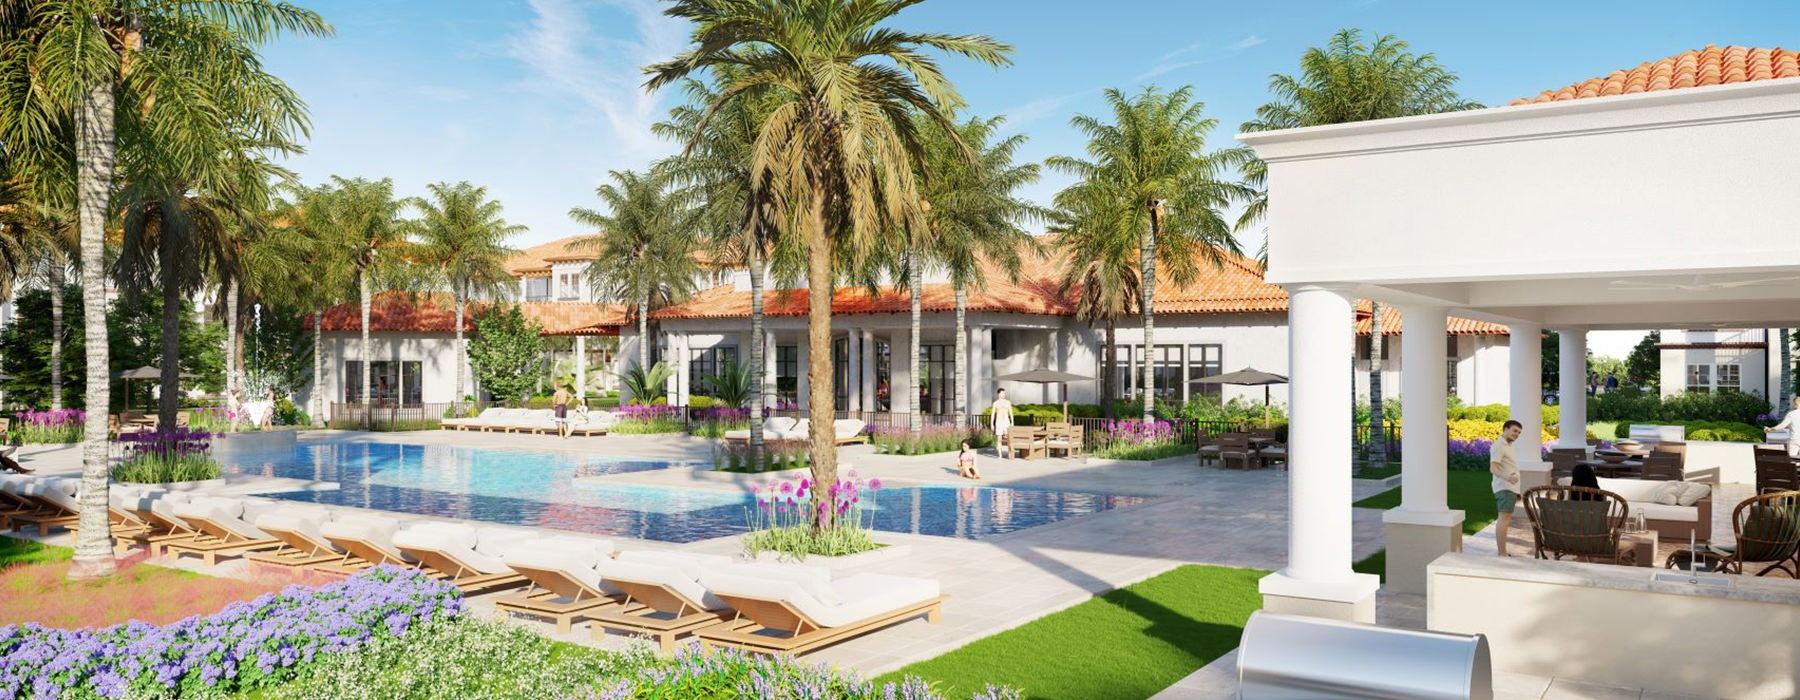 Exterior view with Pool - Minneola Hills Apartments